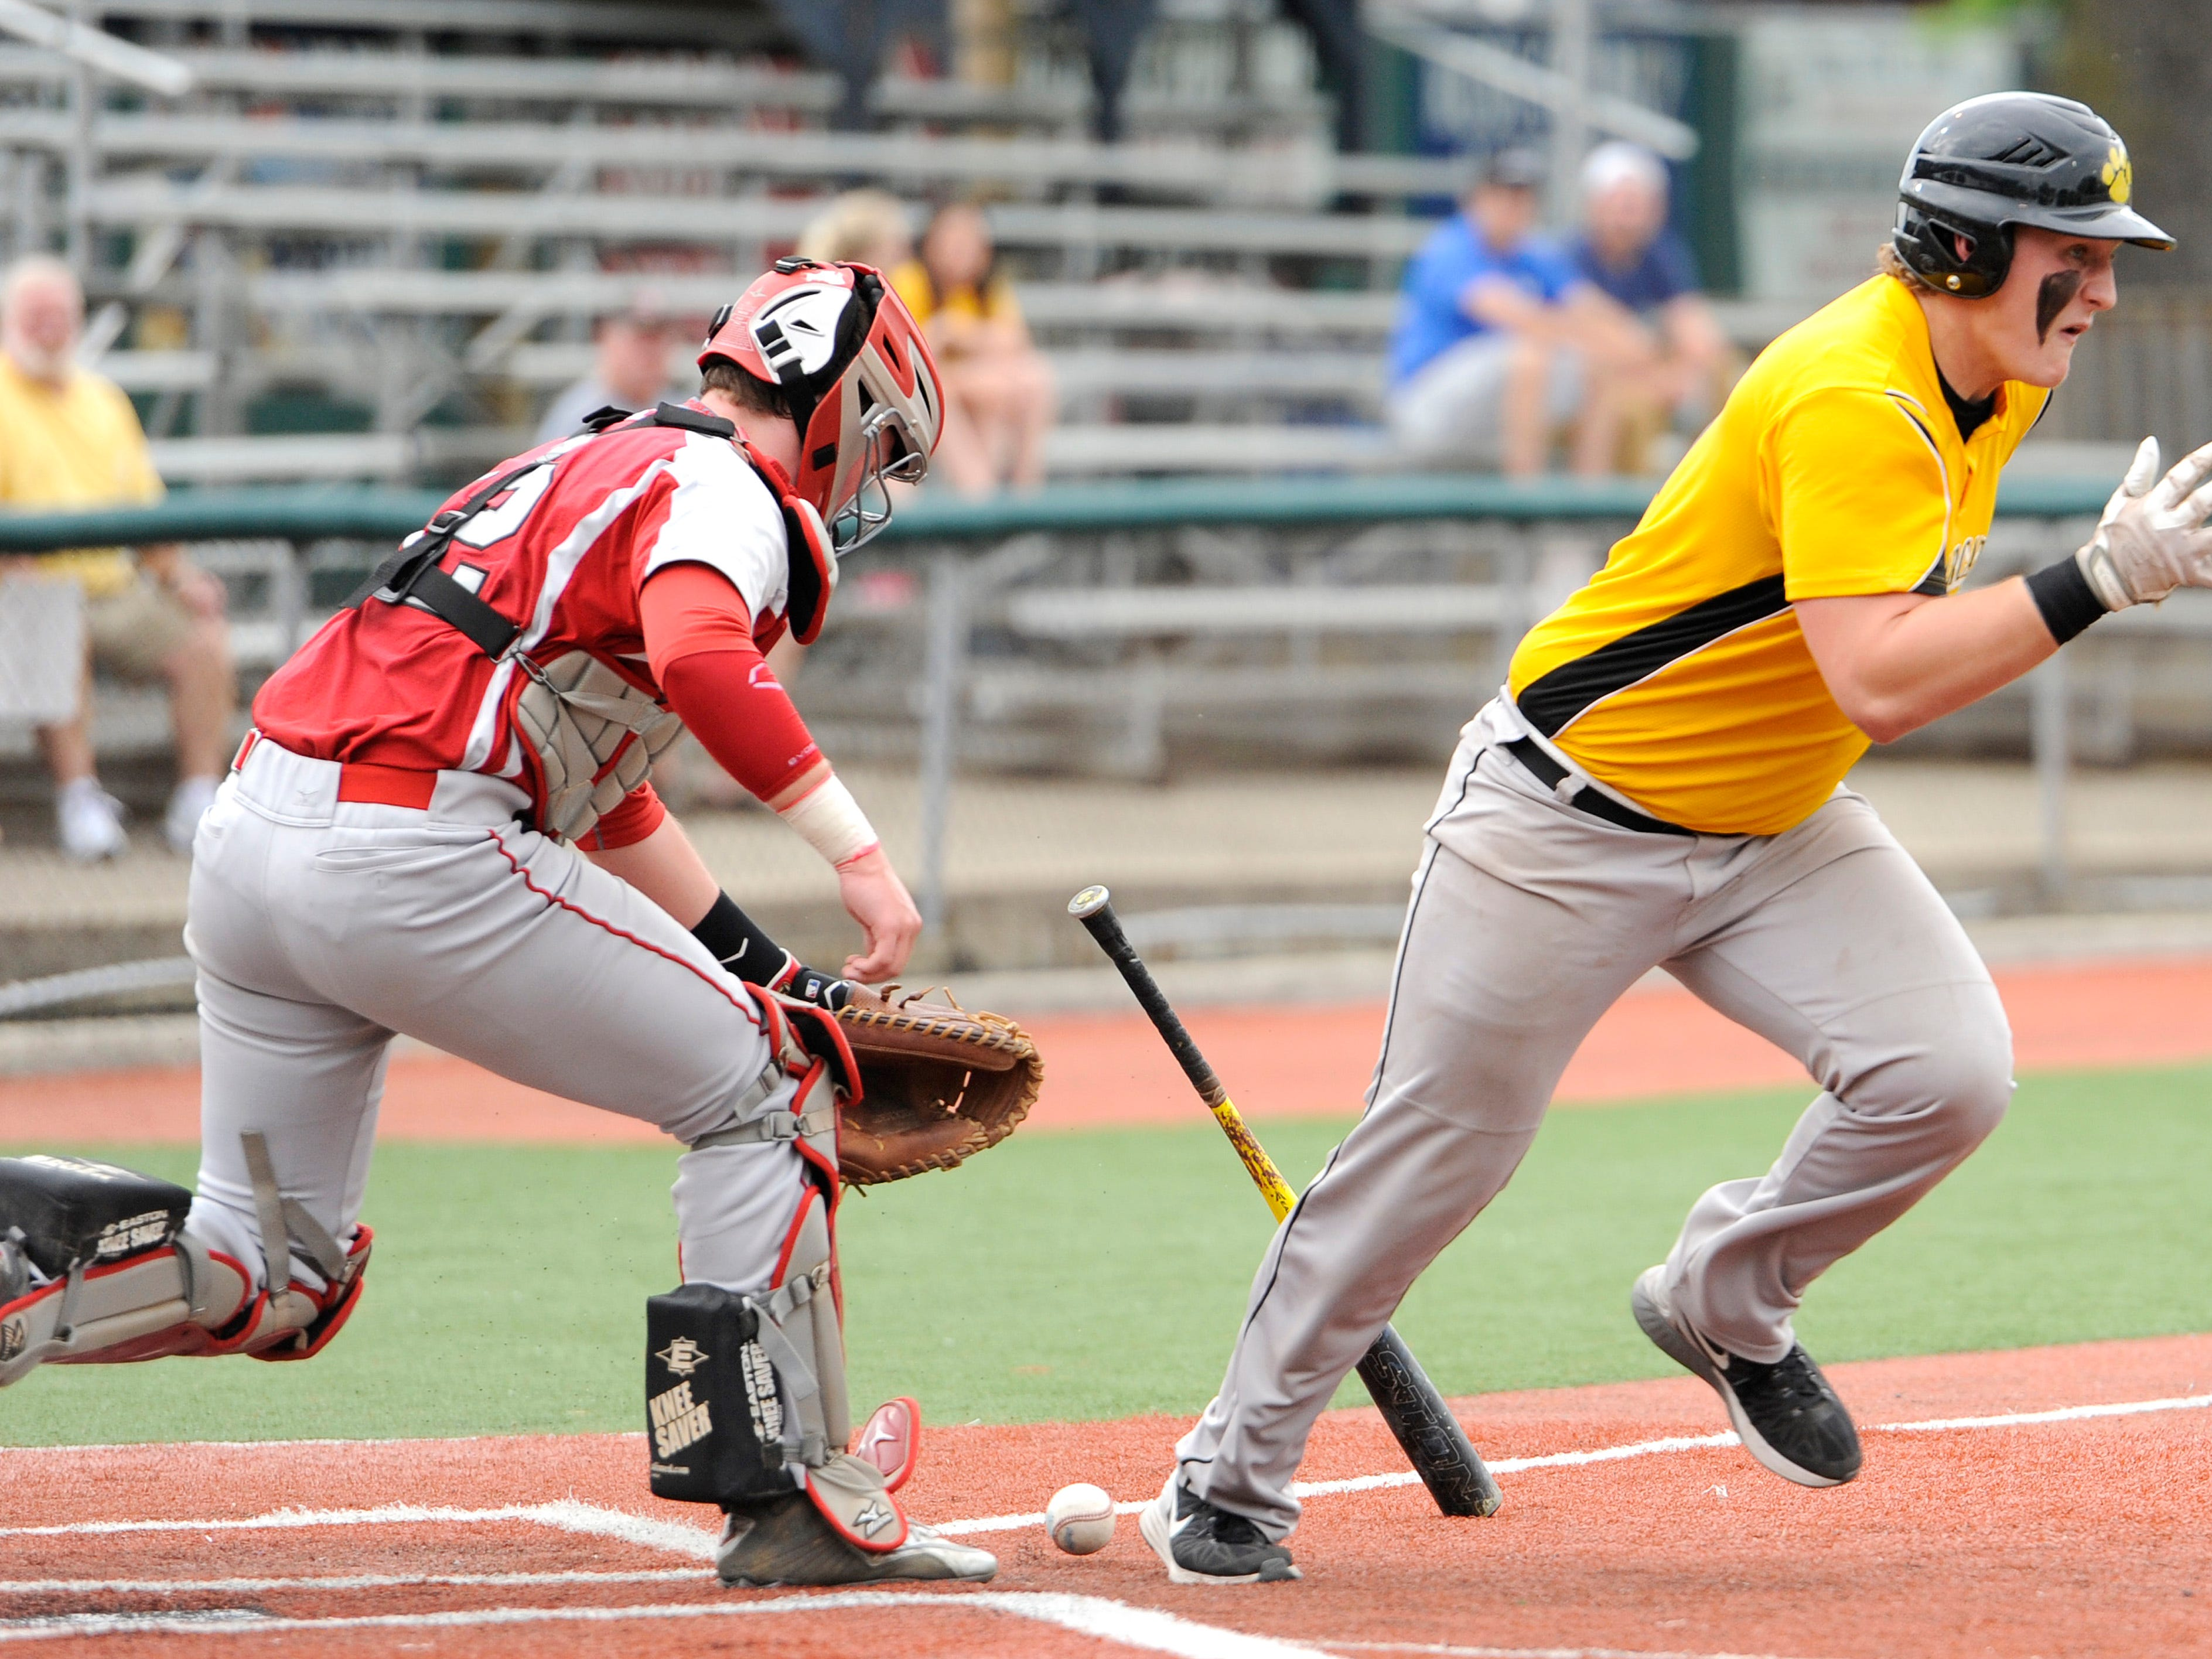 Paint Valley's Josh Krech tries to reach base on an infield hit during the Division IV District Dinal against Symmes Valley at V.A. Memorial Stadium, Monday night. The final score was Paint Valley 5, Symmes Valley 4.